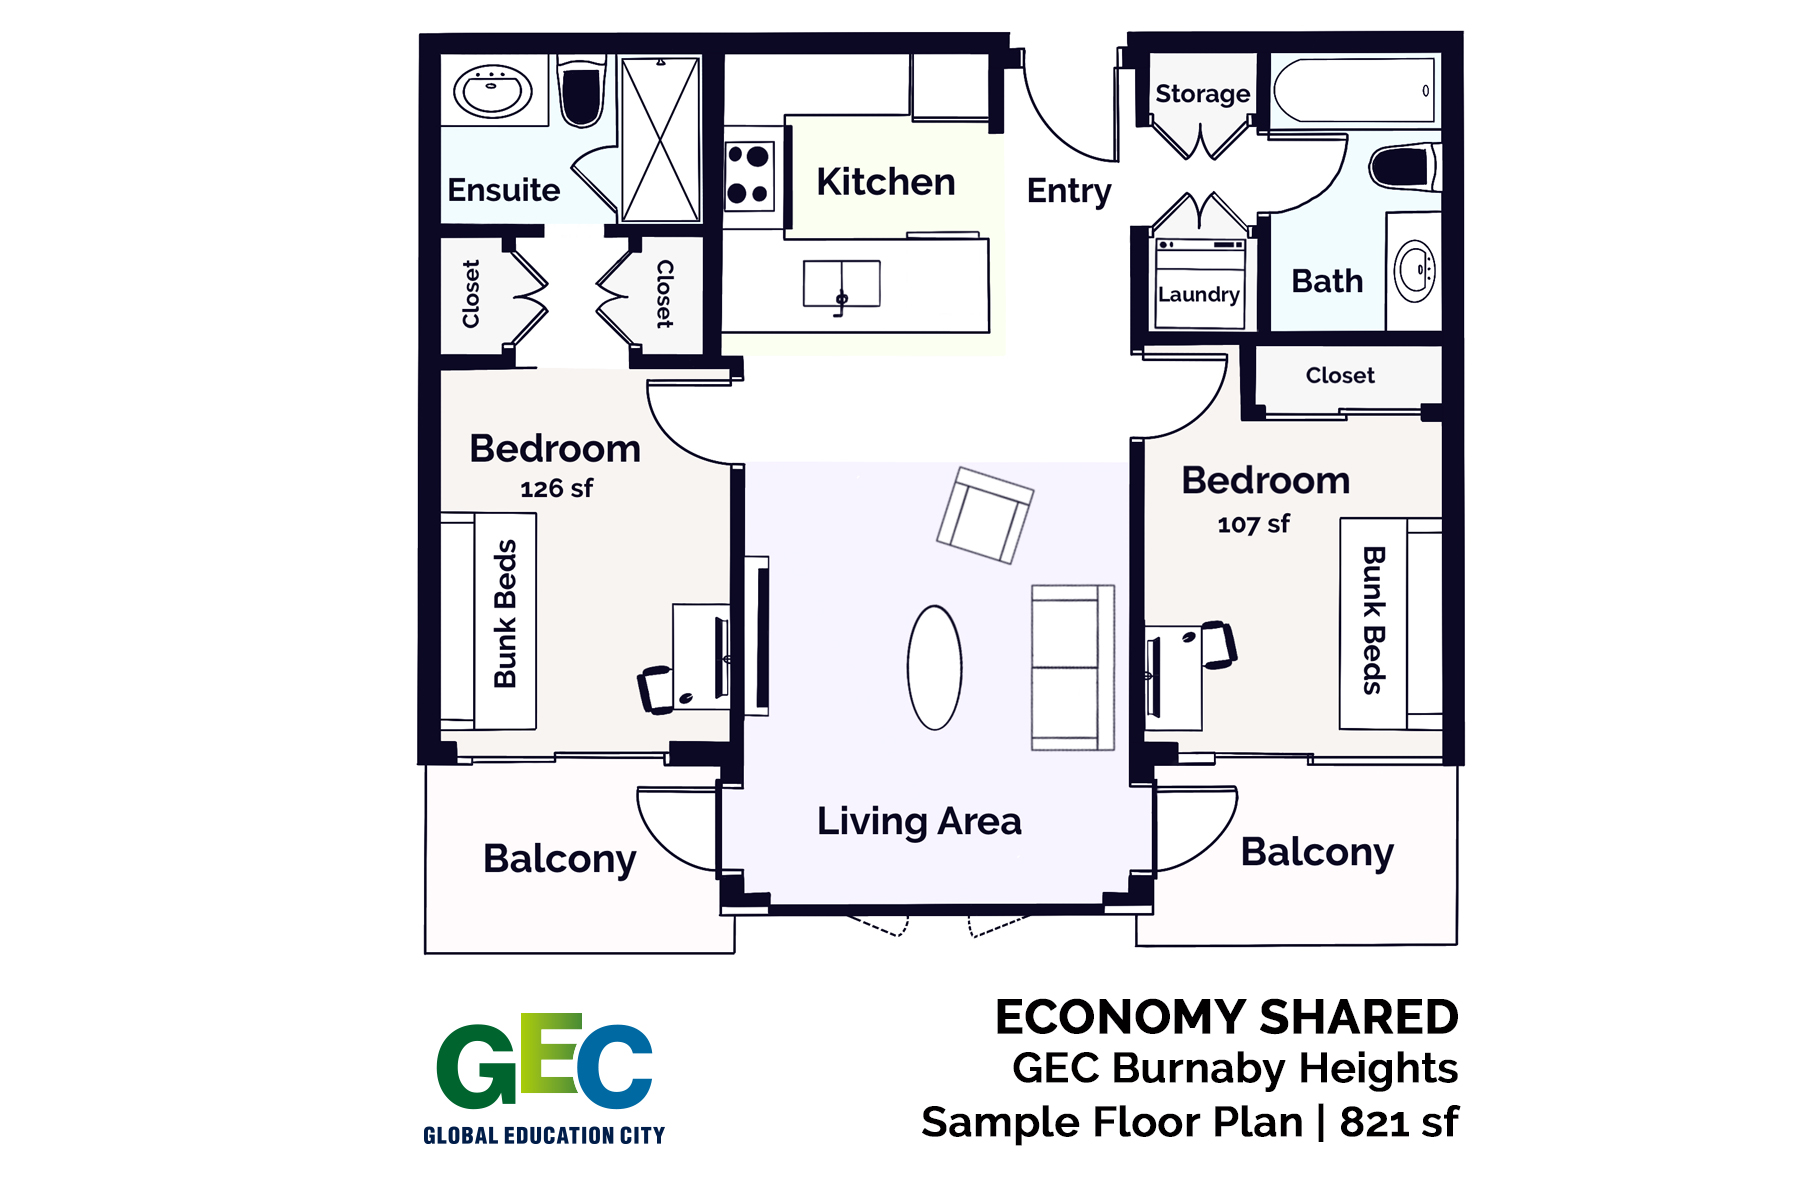 Economy Shared Bedroom floor plan